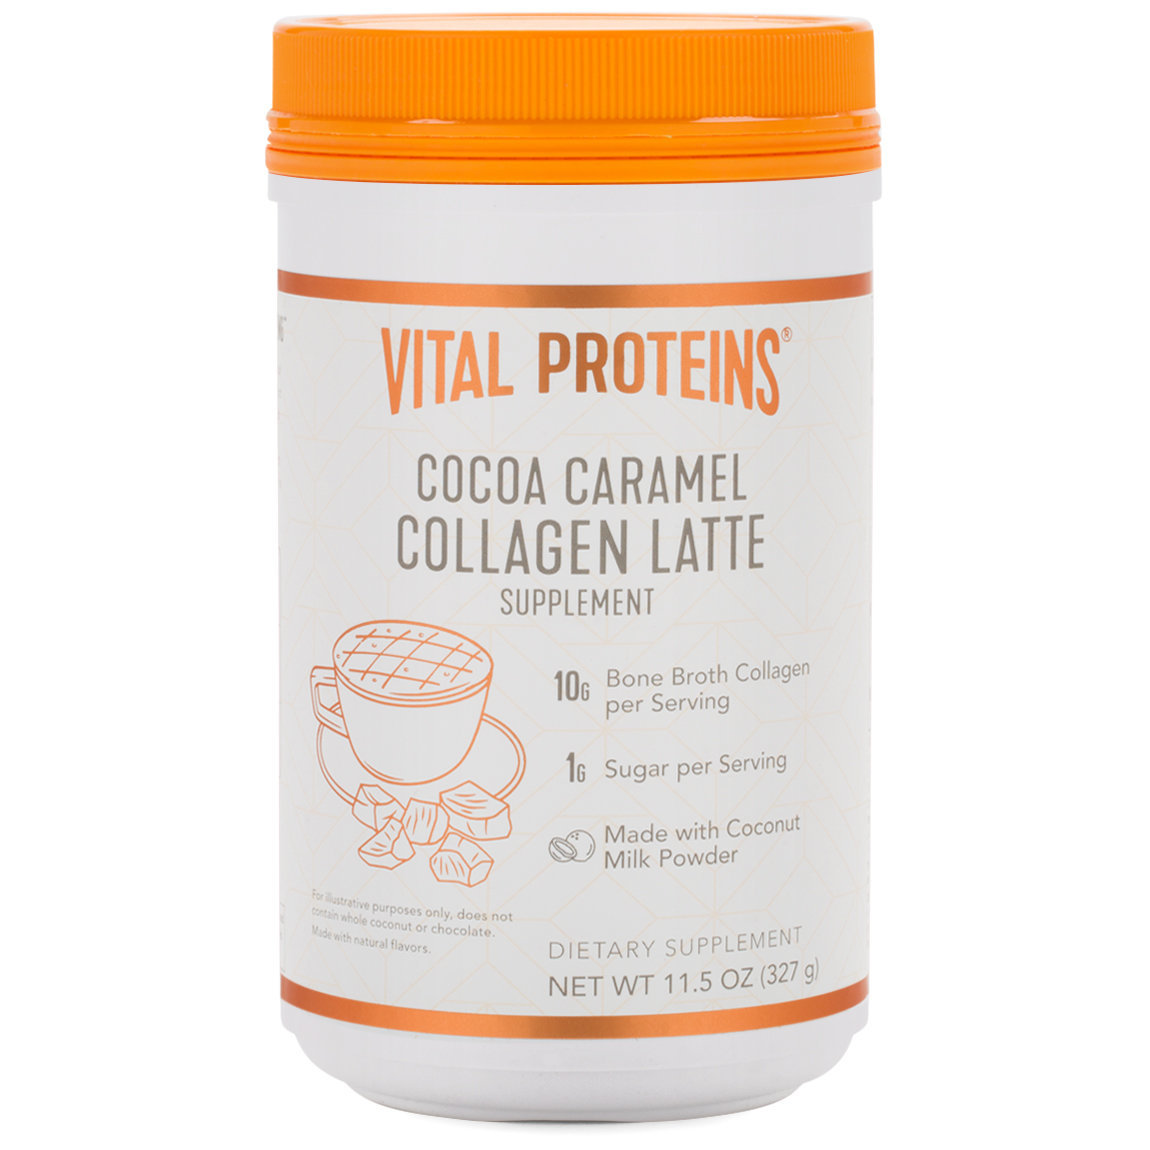 Vital Proteins Collagen Latte - Cocoa Caramel product swatch.